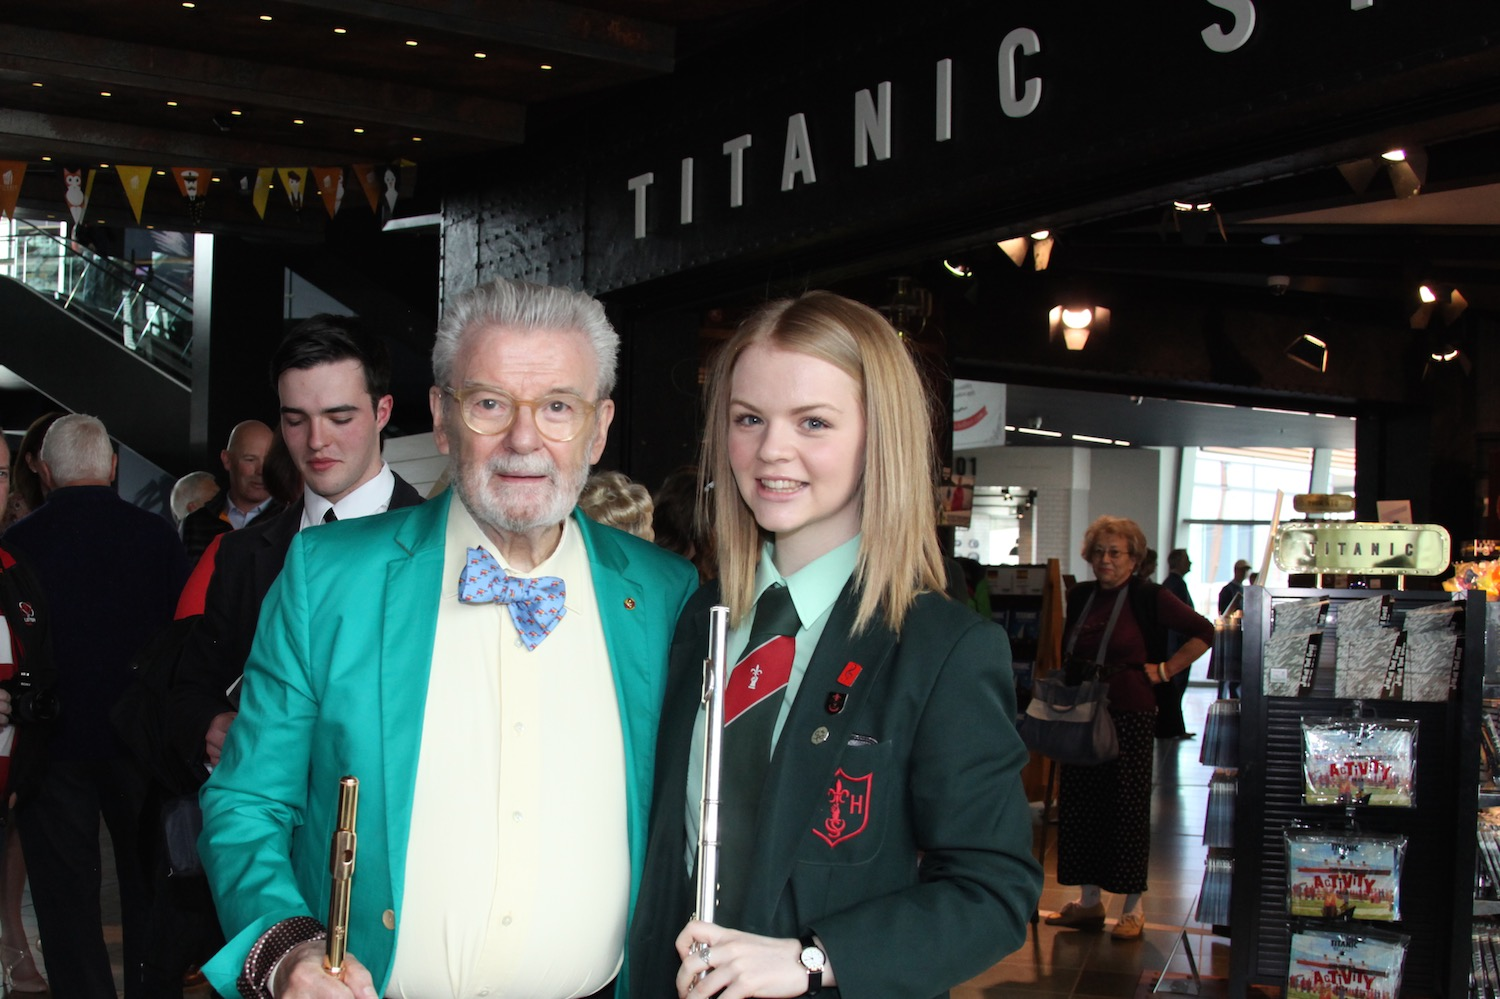 Sir James Galway with Jannah Bell   Photo: soundfocus.co.uk